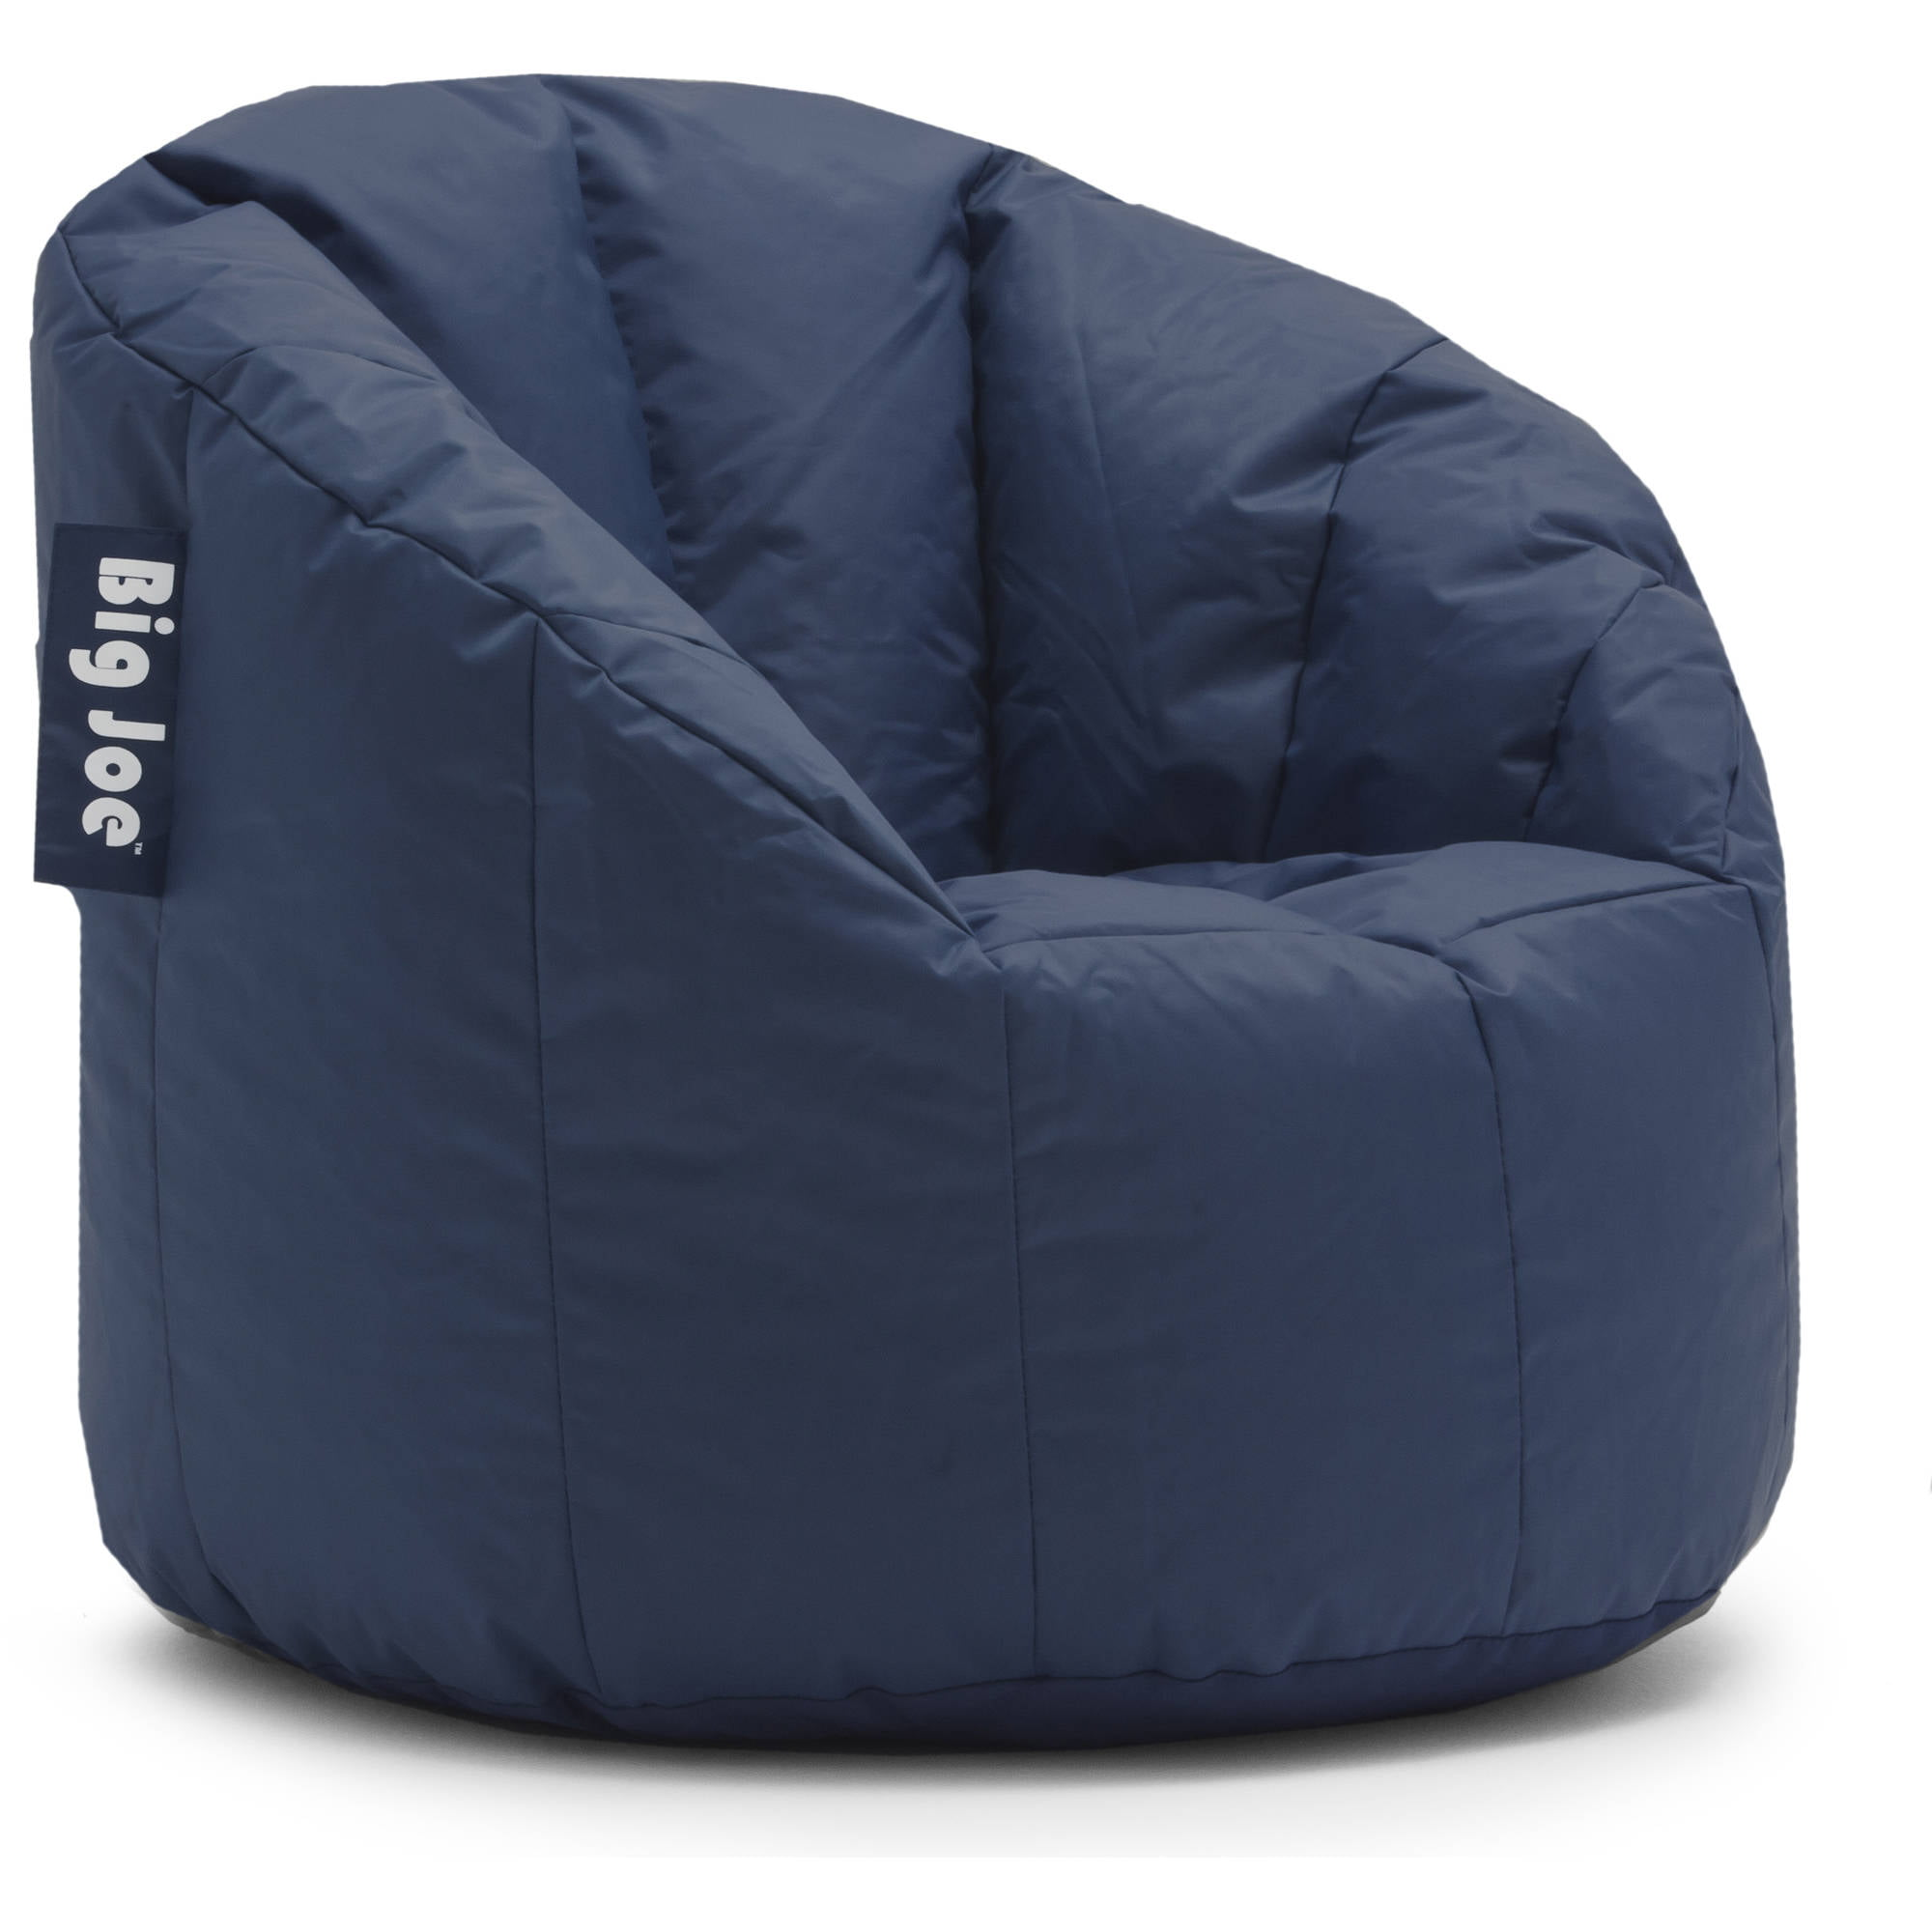 big joe chair walmart Comfort Research Big Joe Kid's Lumin Bean Bag Chair, Indigo  big joe chair walmart